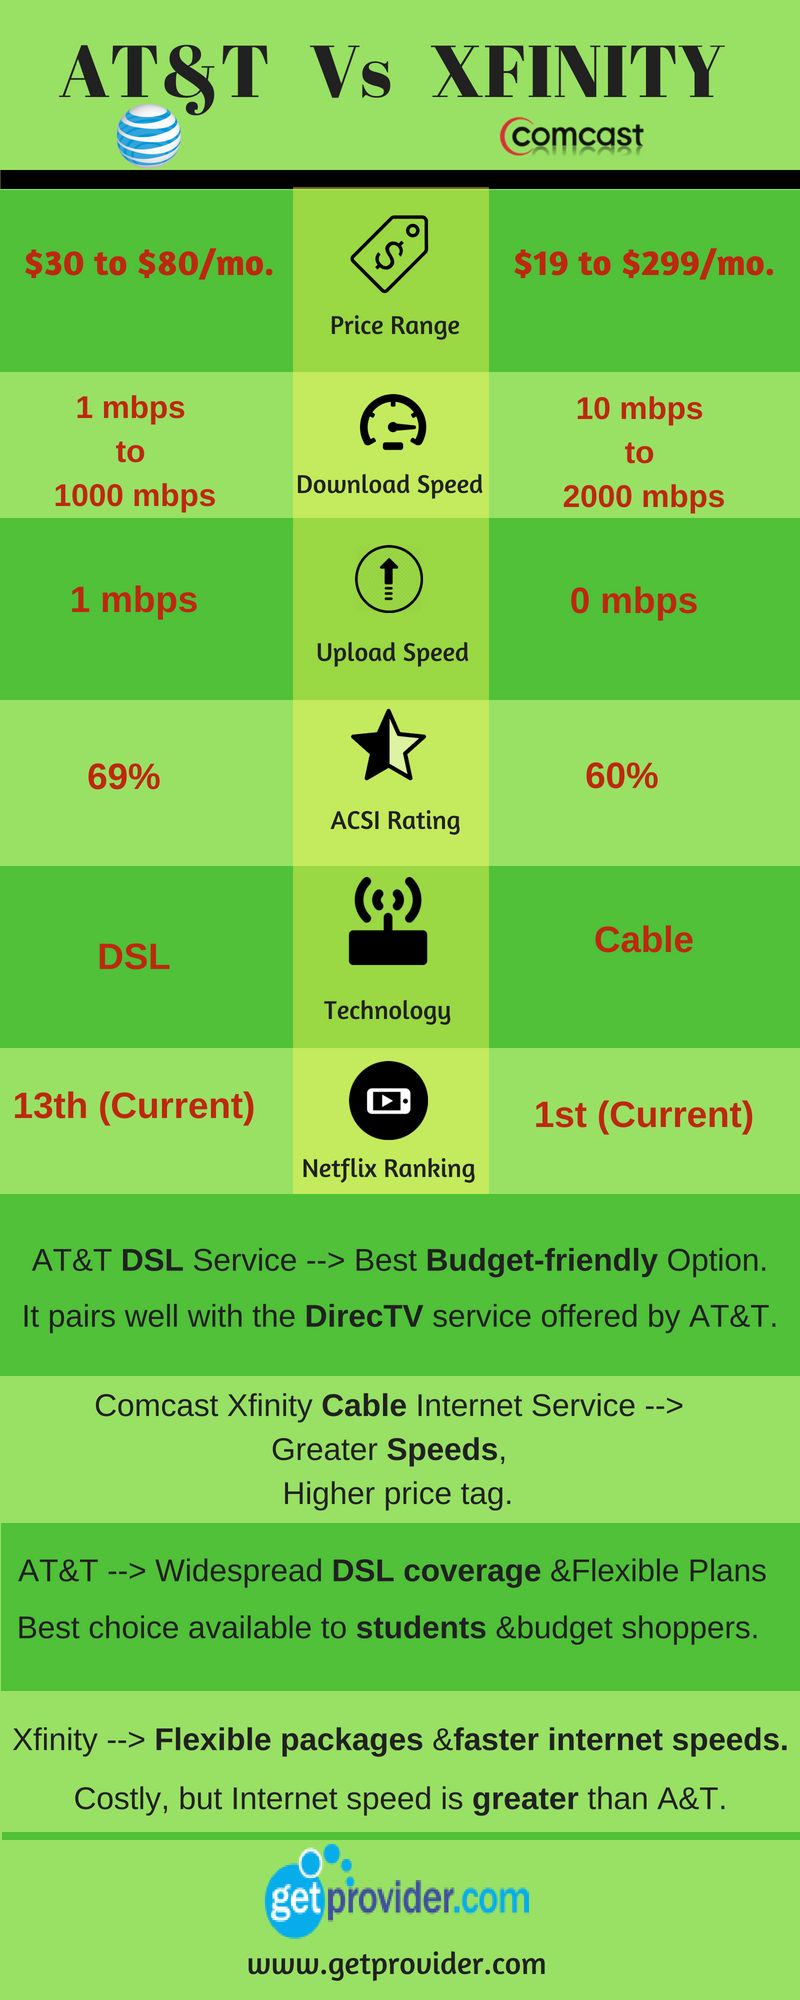 Looking for best deals on #DSL or #Cable #internet? Get to